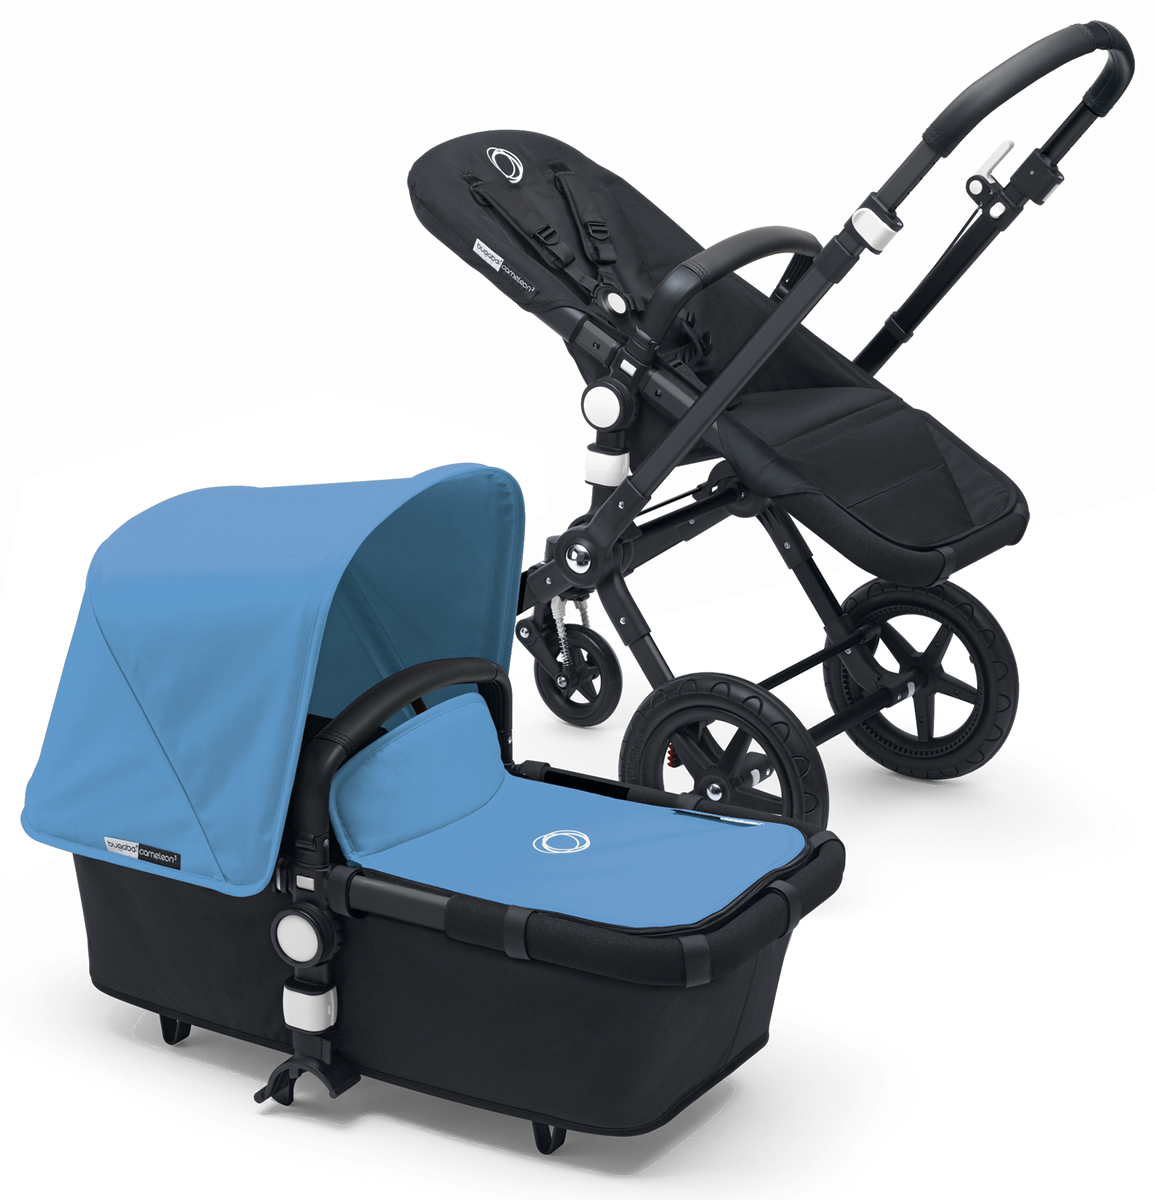 Bugaboo Cameleon 3 Stroller - All Black/Ice Blue